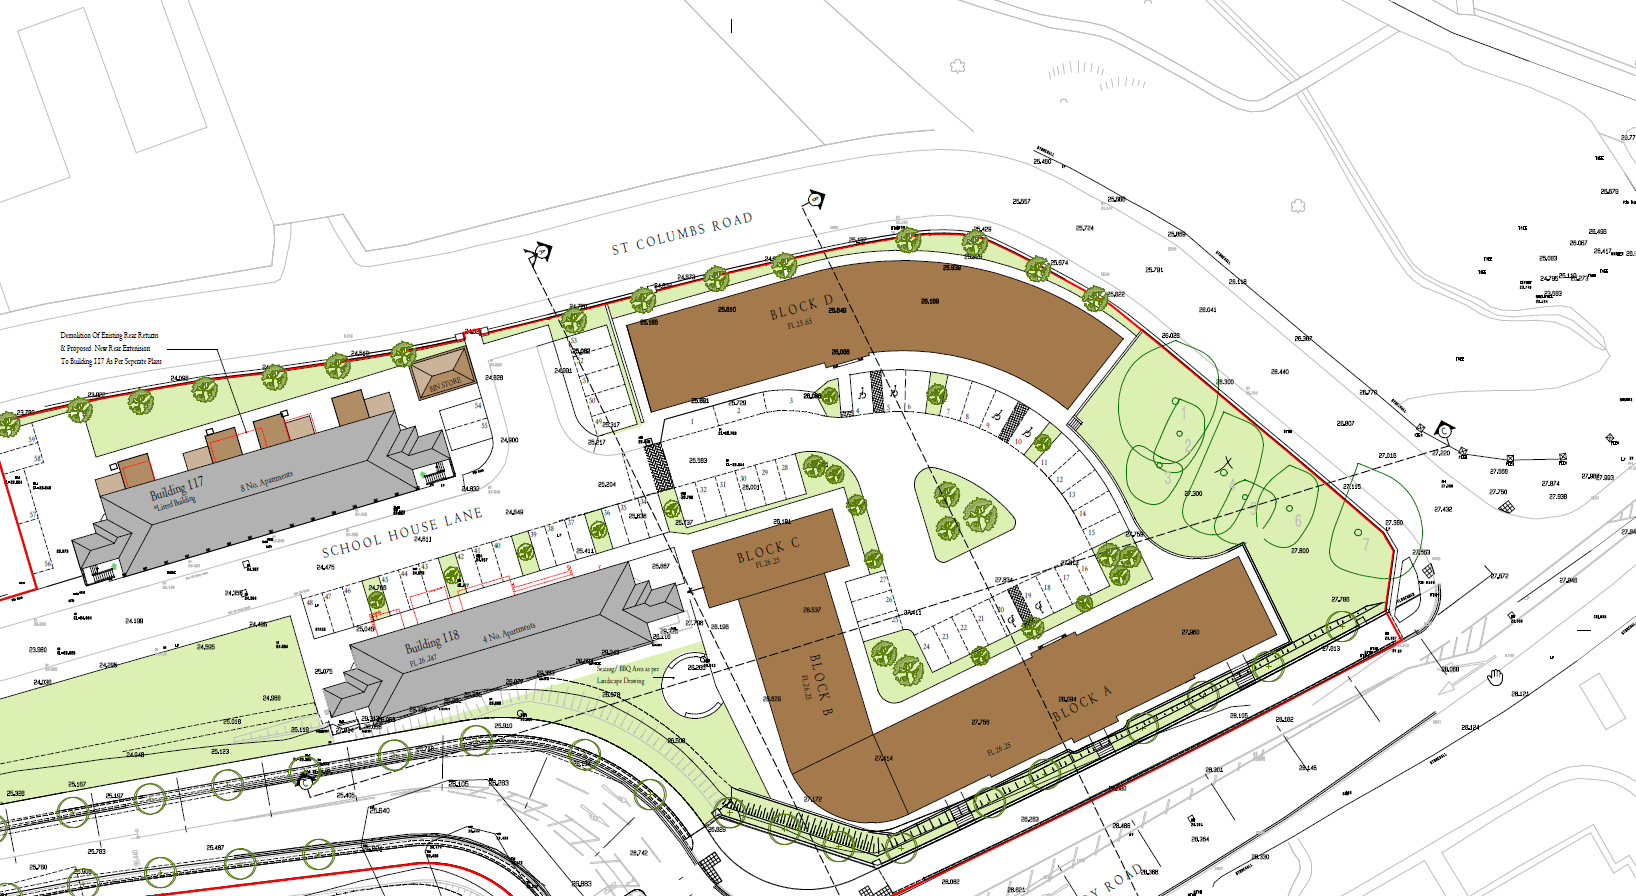 21 feb 2021 - site plan